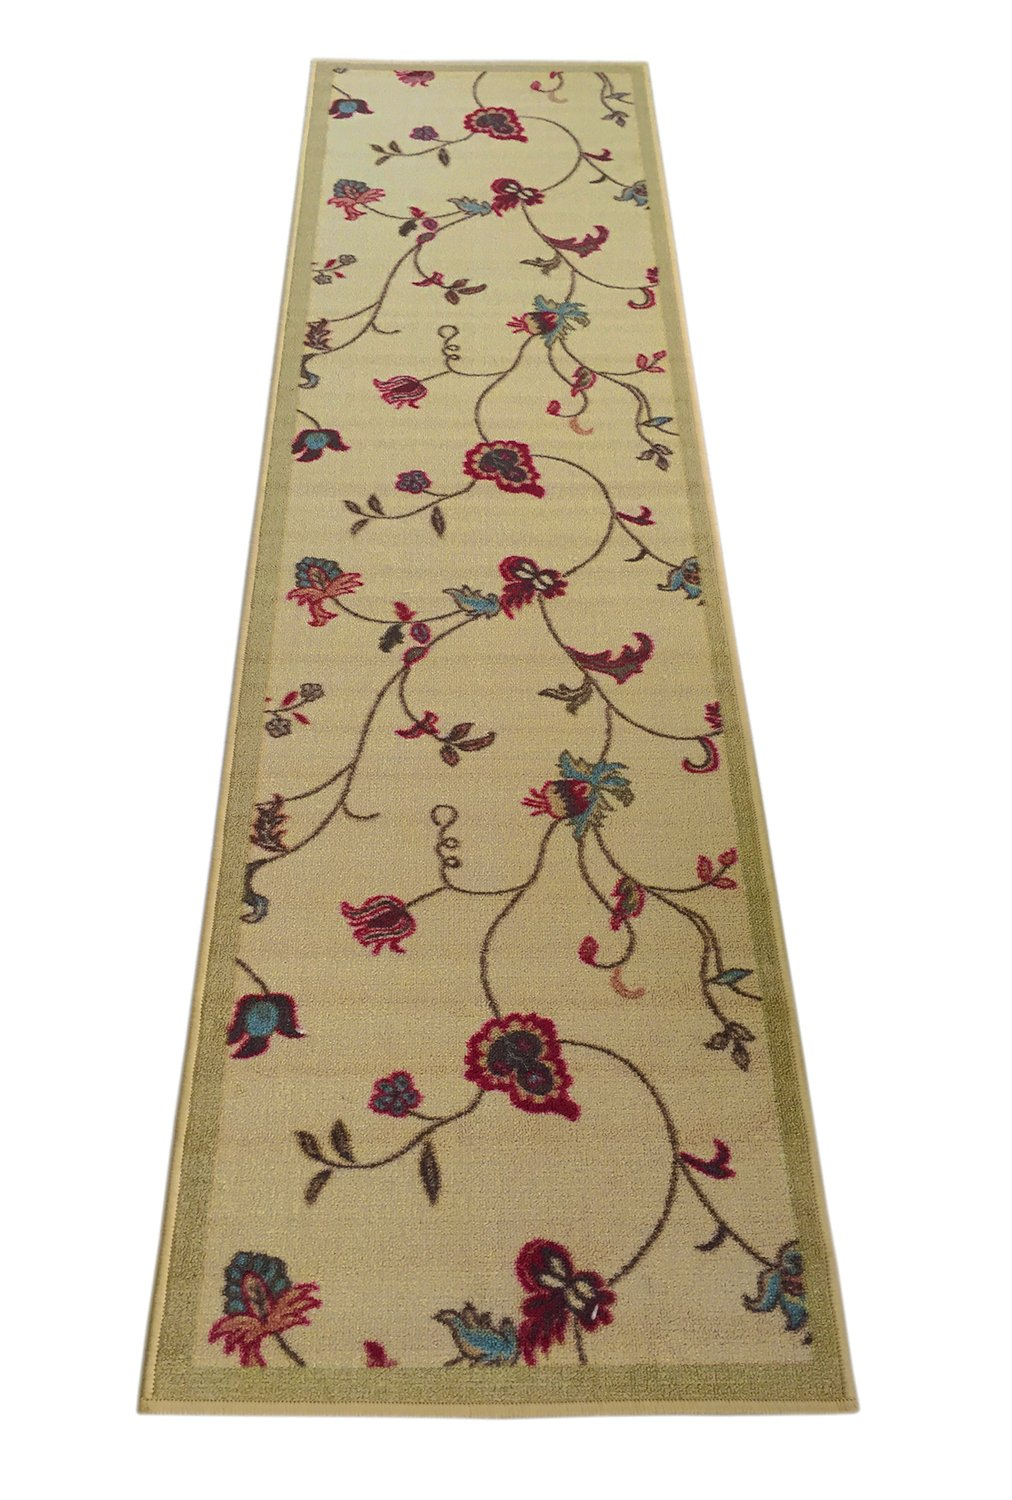 """Flowers Scroll Floral Printed Slip Resistant Rubber Back Latex Runner Rug Different Color Options (Beige, 23""""x7') - Made in Turkey 